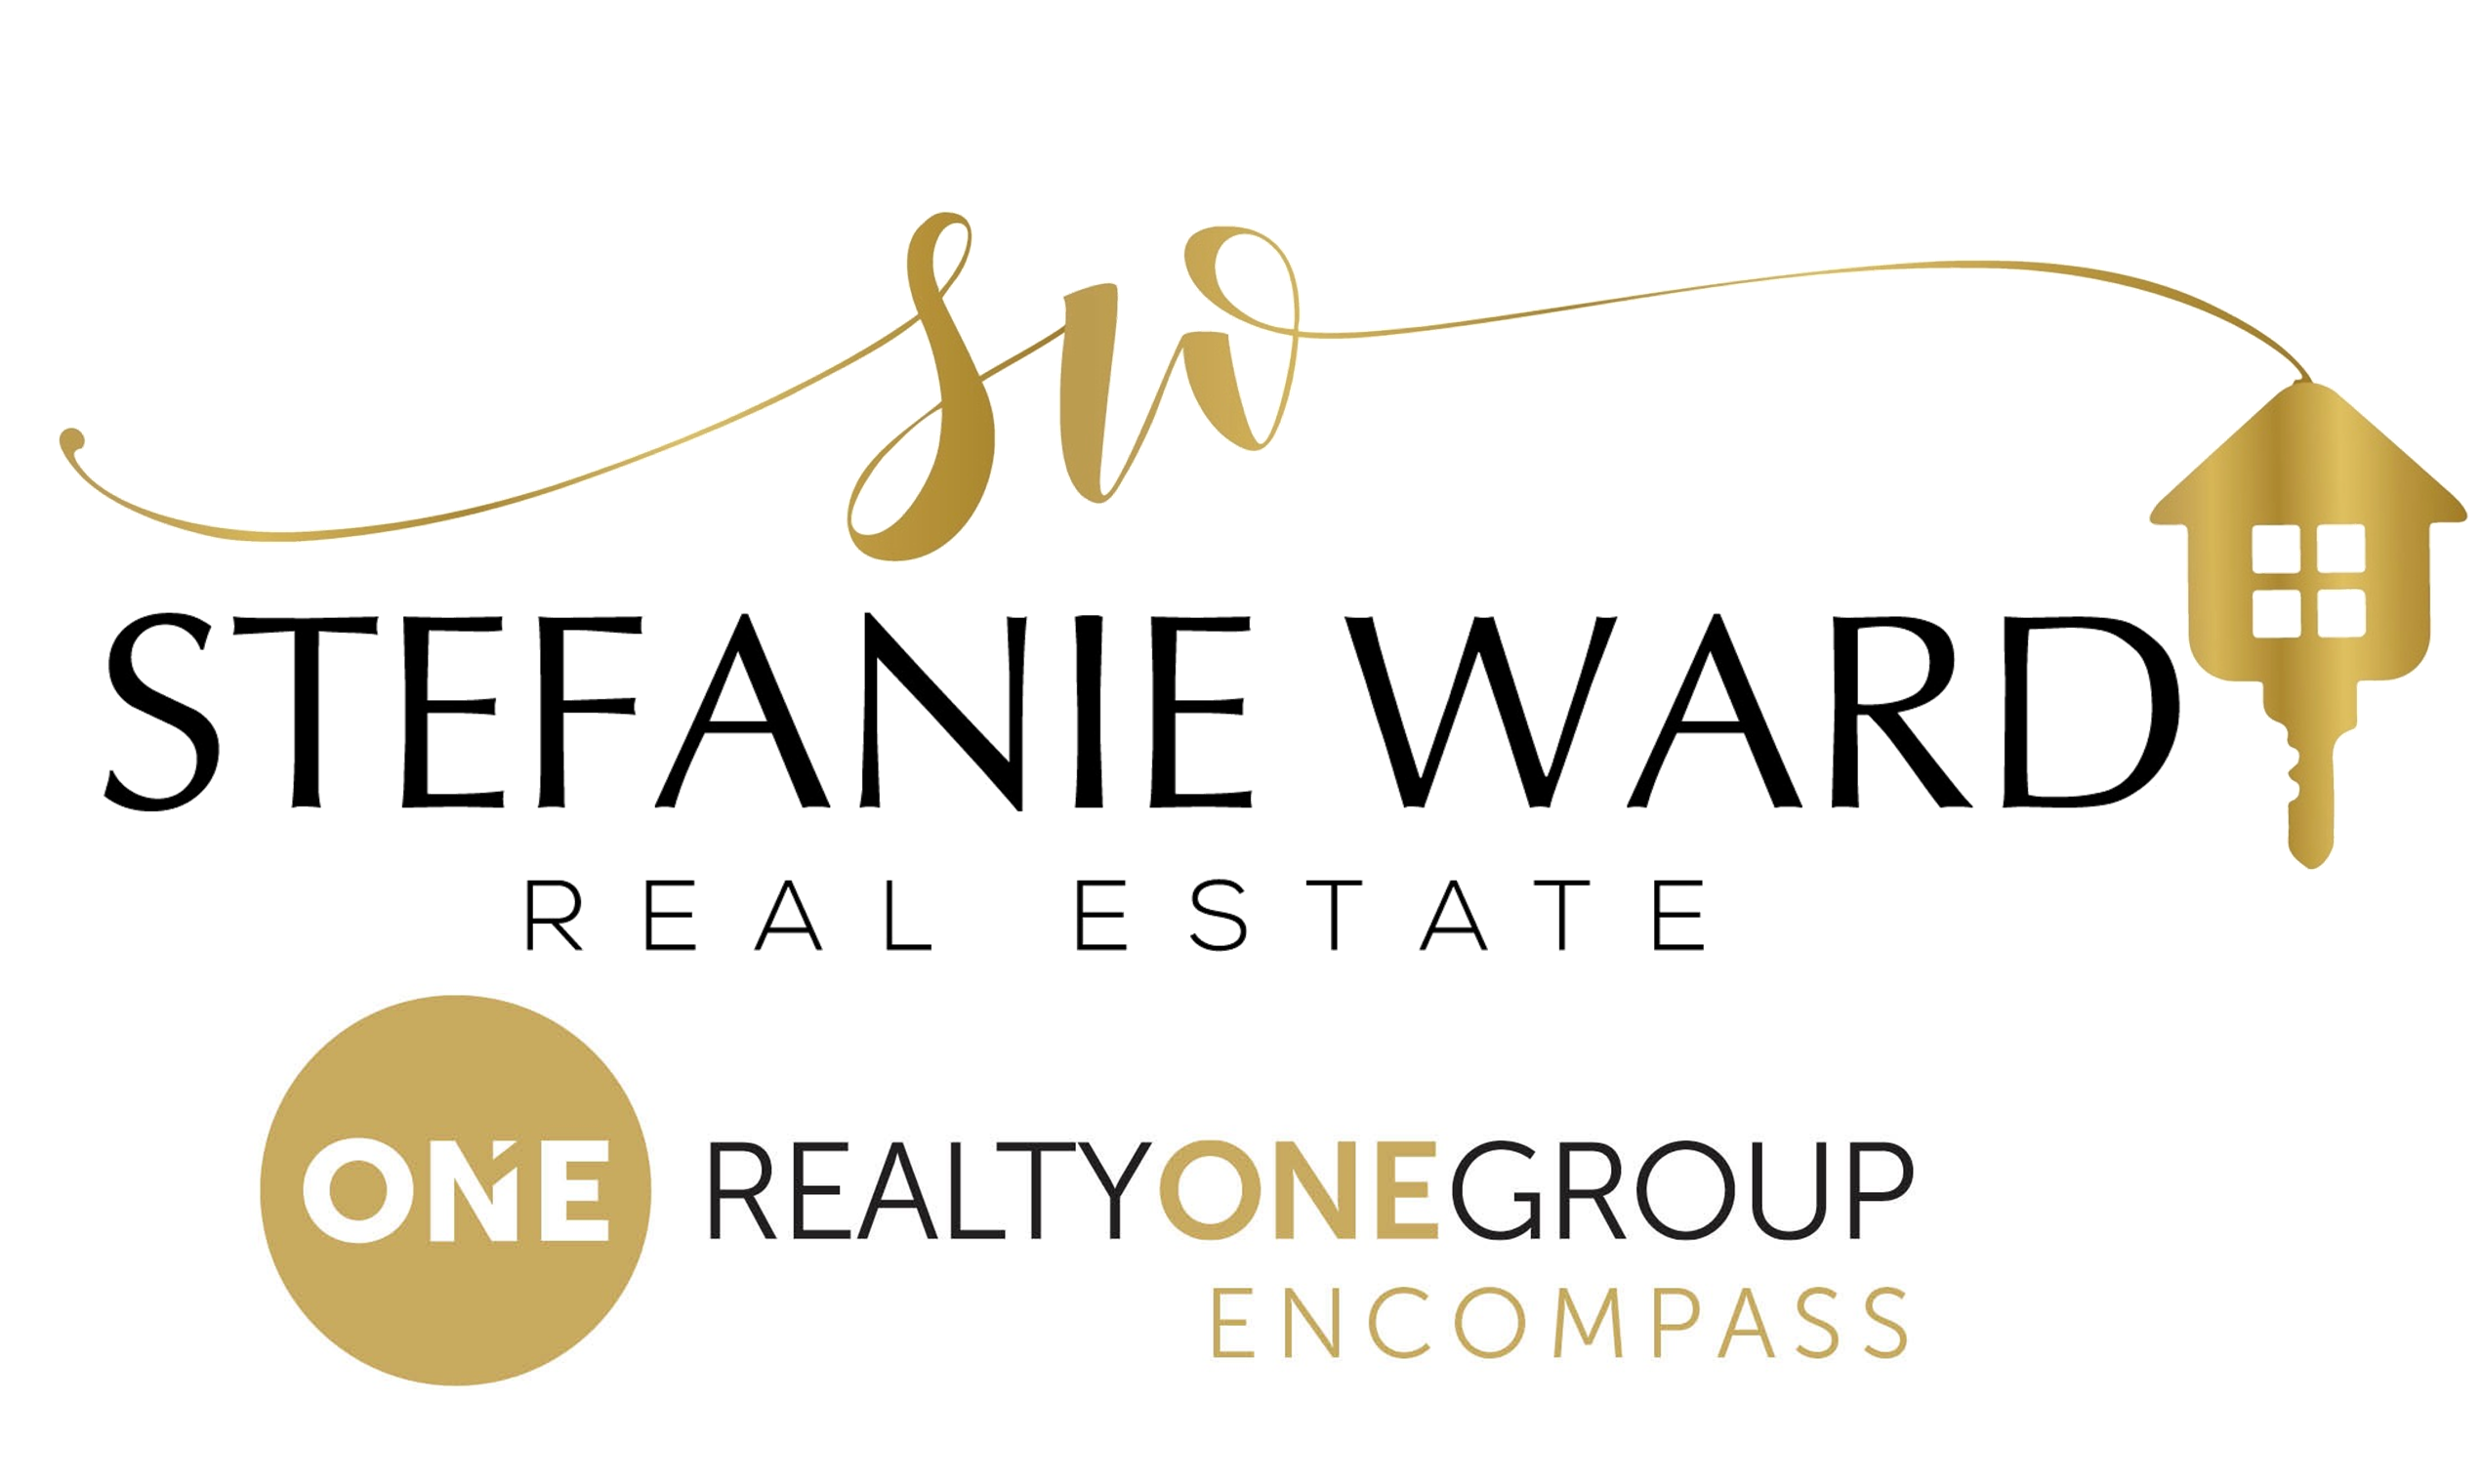 Stephanie Ward Realty